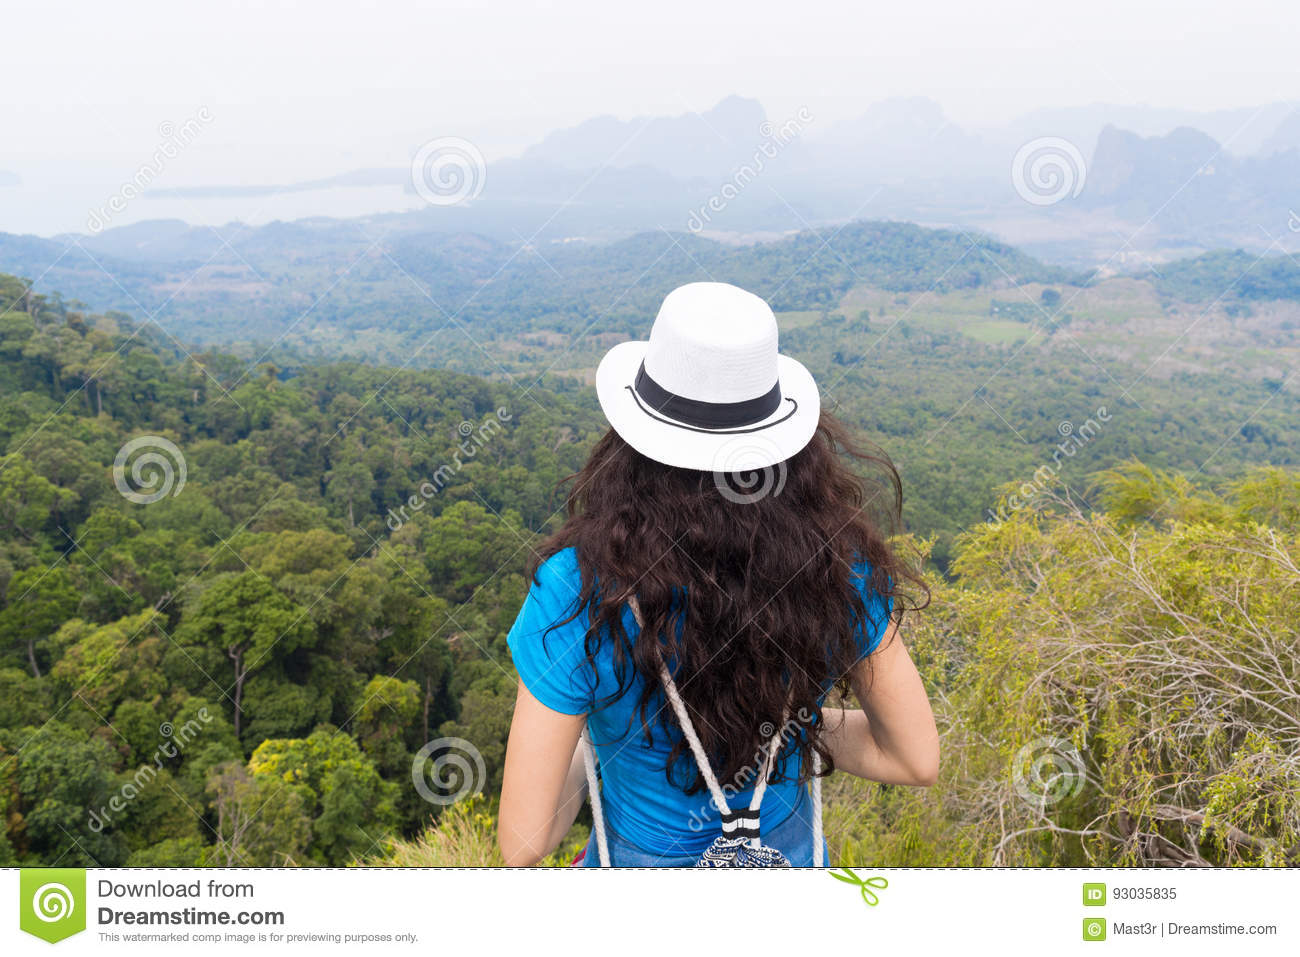 Girl standing on rocky ledge overlooking river with her